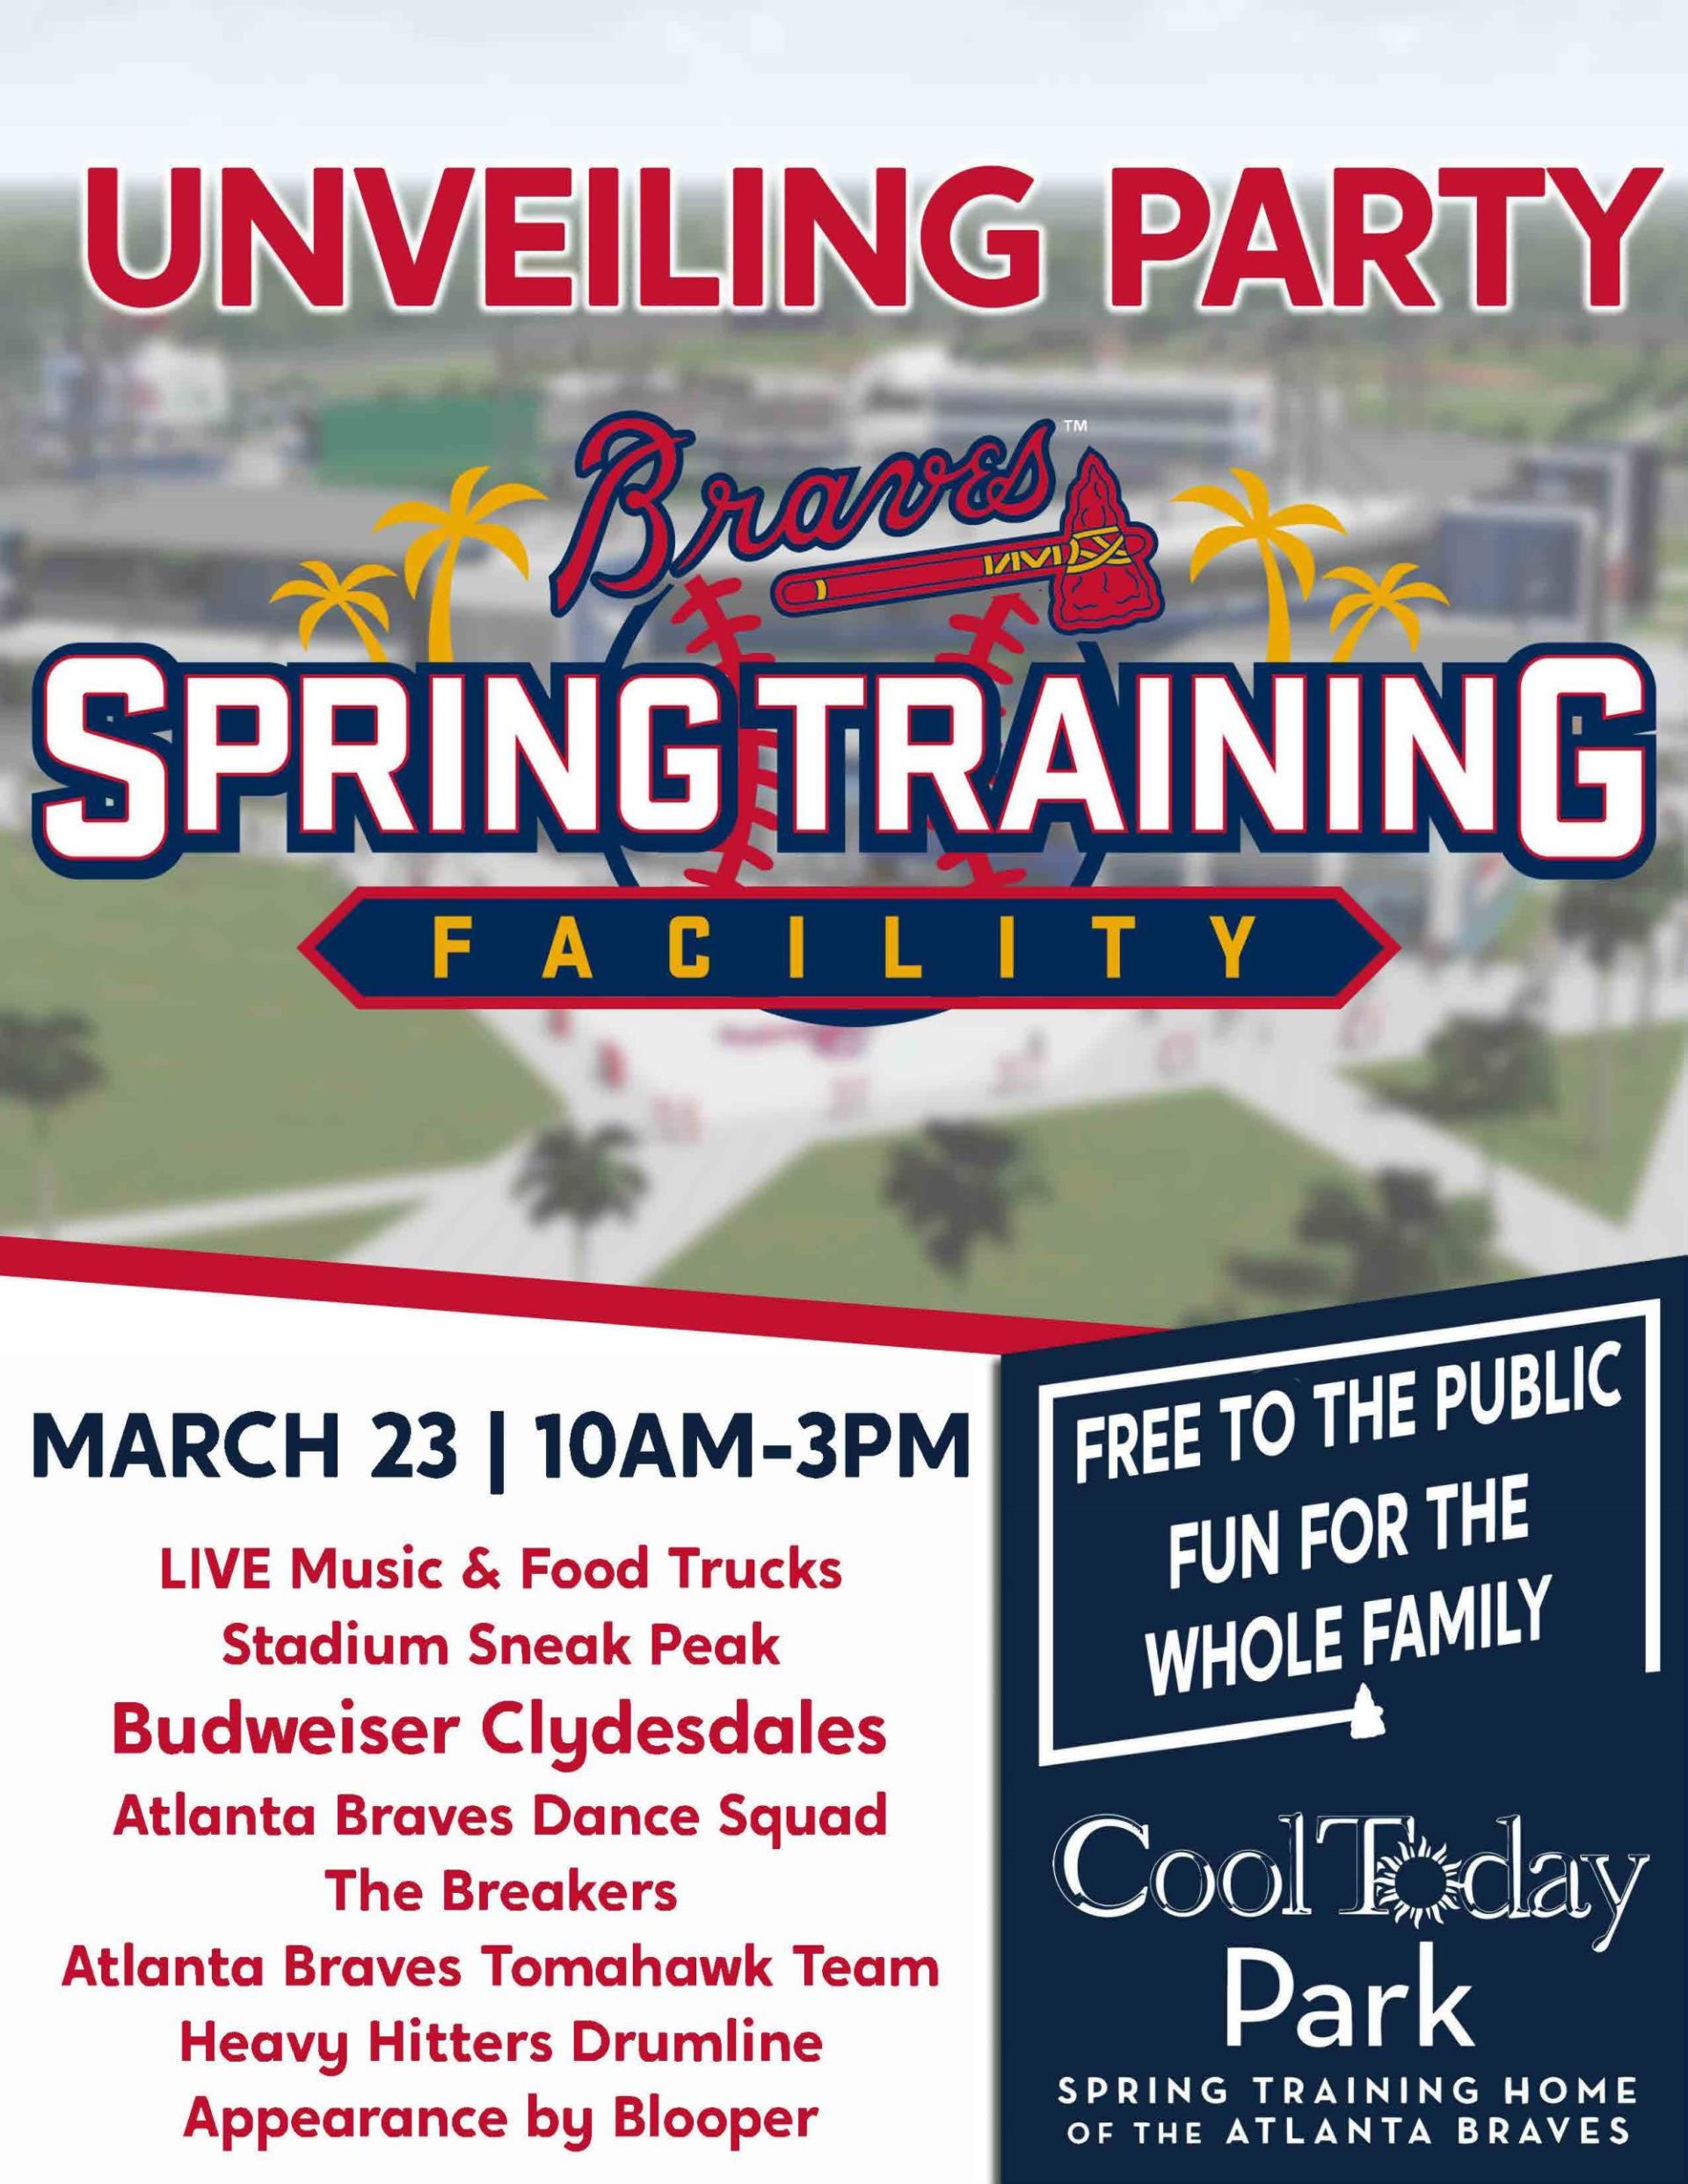 Unveiling Party Flyer - Free Community Day at new Braves Spring Training Stadium March 23, 10 a.m. - 3 p.m.